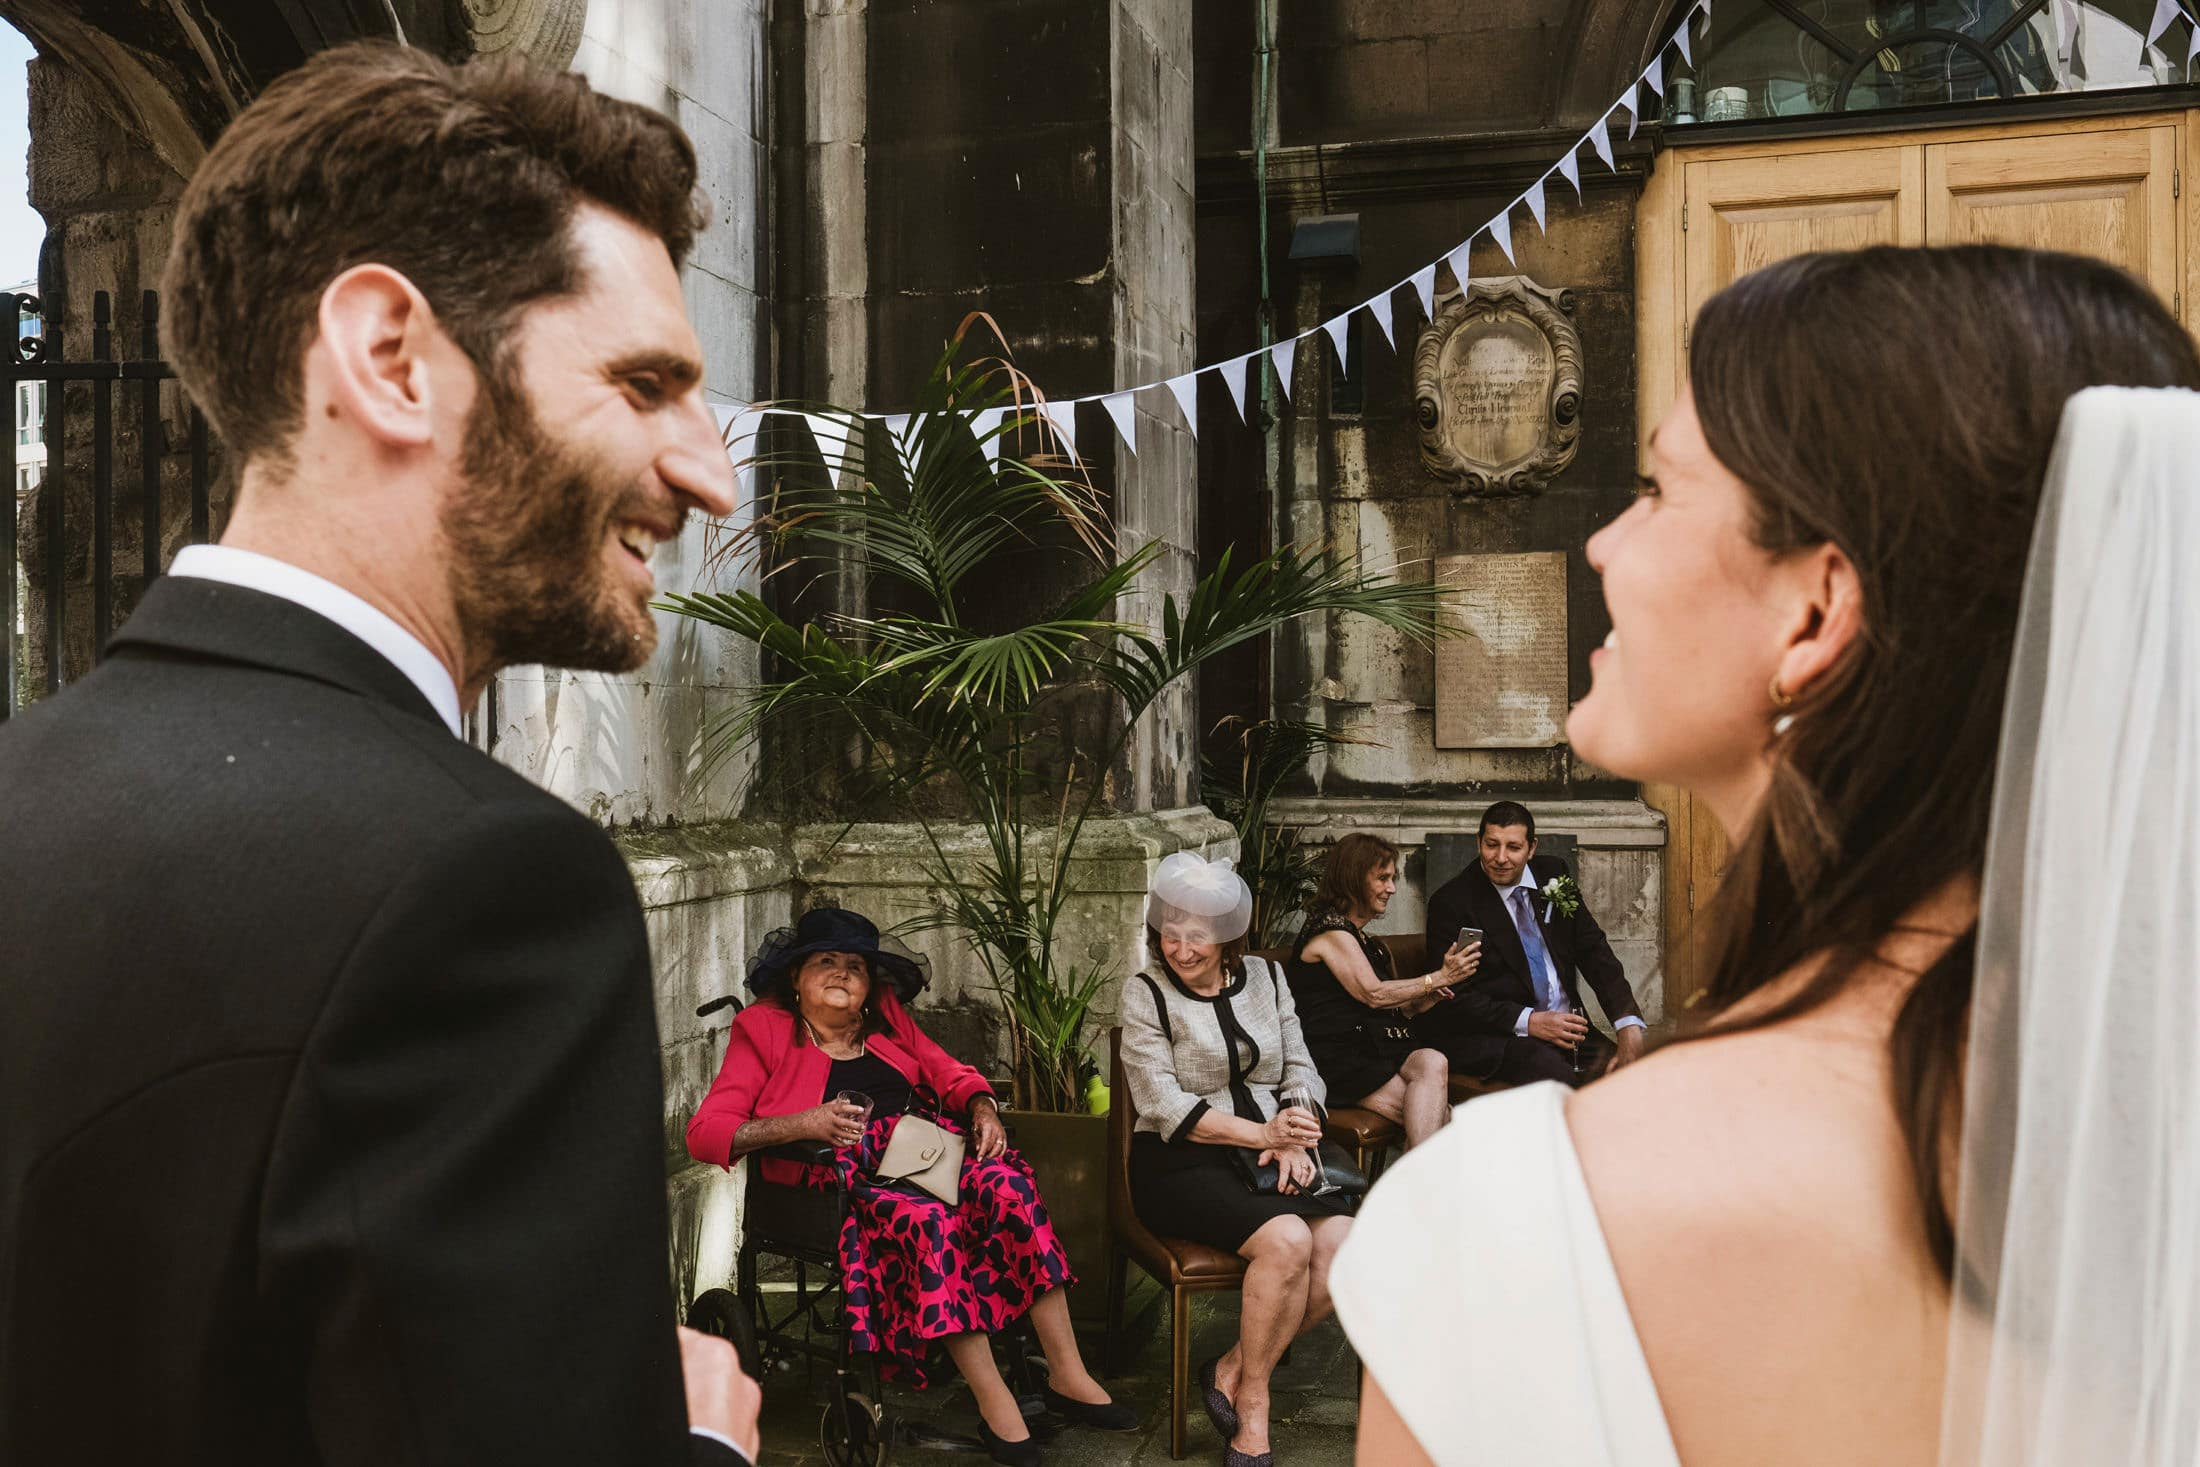 in the foreground a bride and groom, their backs to camera, look at each other across the frame. Between them in the background a section of bunting hangs down, beneath which are four seated guests